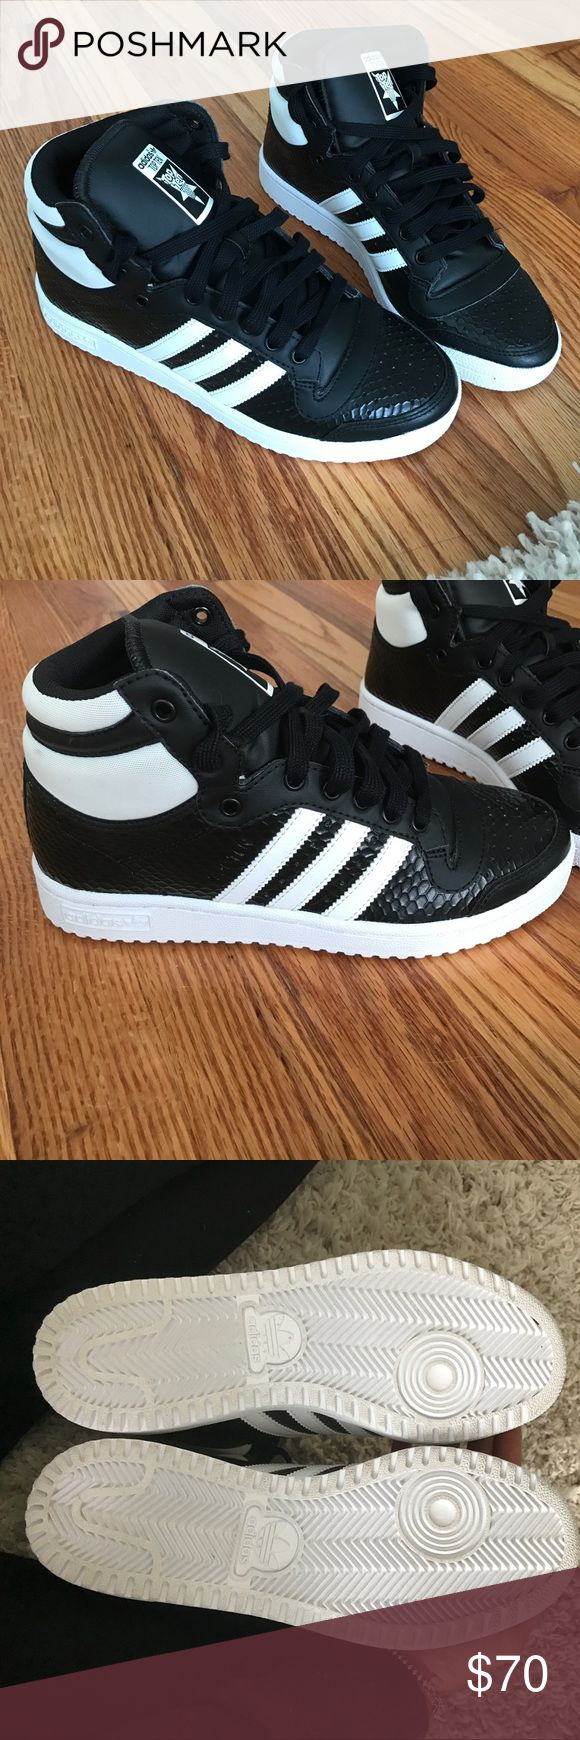 Adidas high tops Black and white faux snake skin adidas high tops. NWOT Adidas Shoes Sneakers